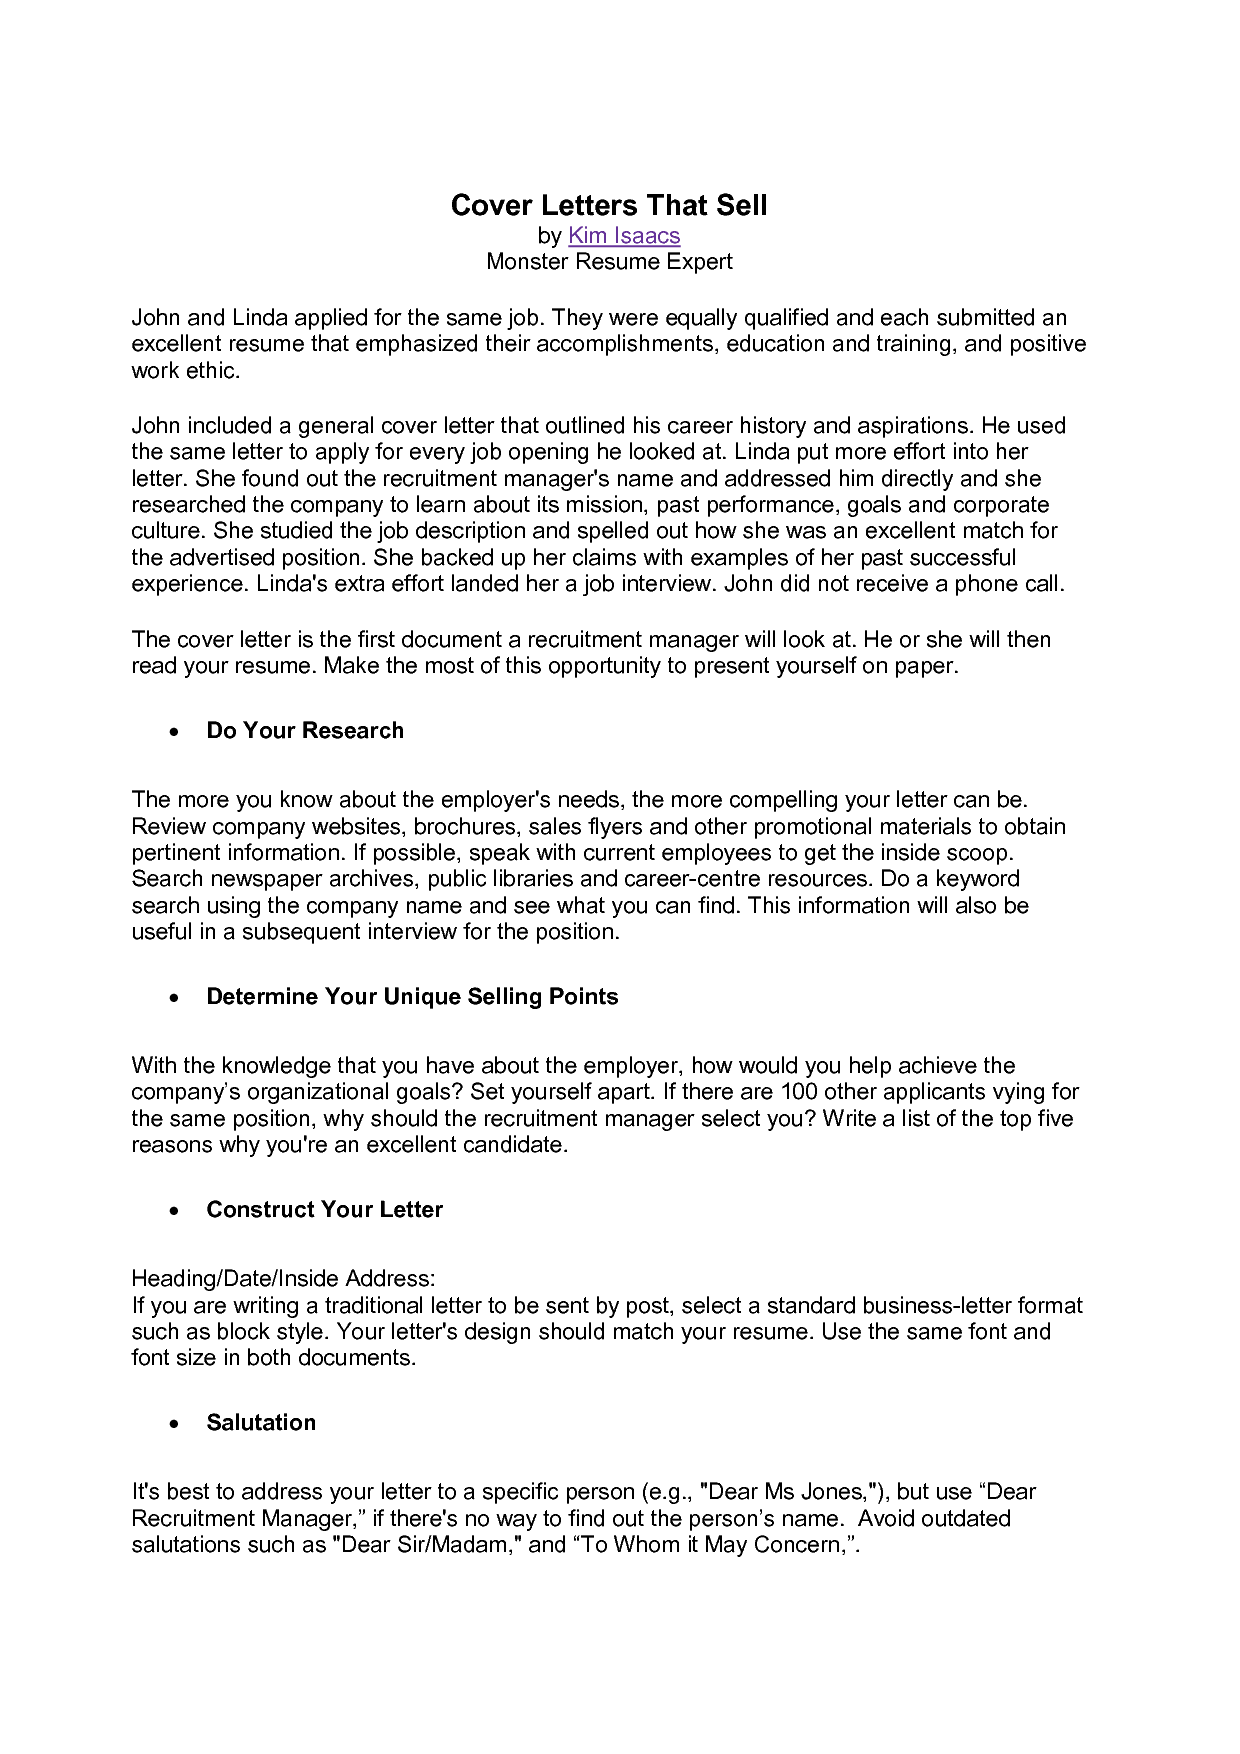 monster cover letter tips